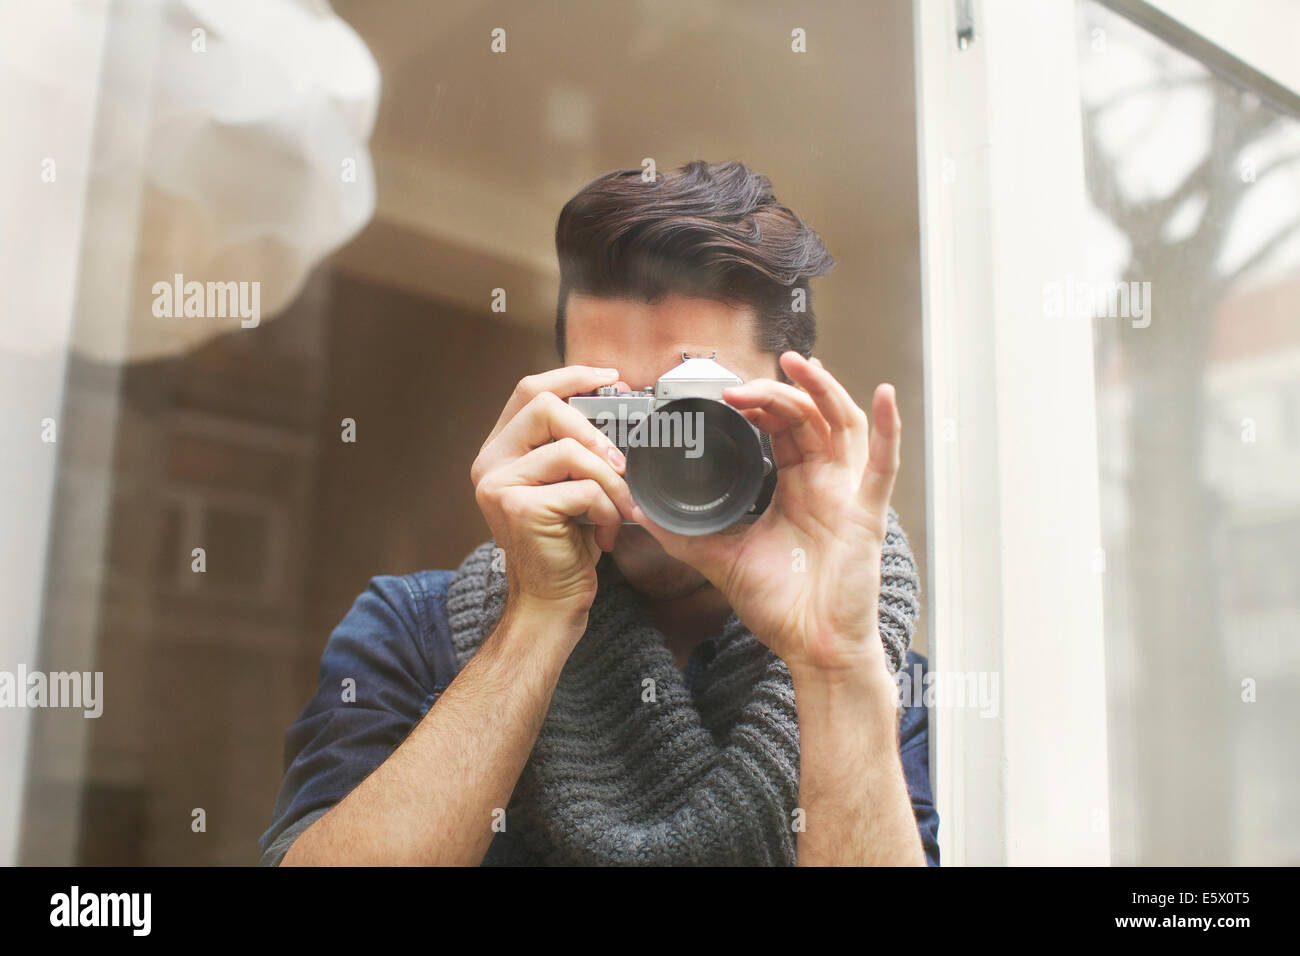 Portrait of young man photographing with SLR camera - Stock Image